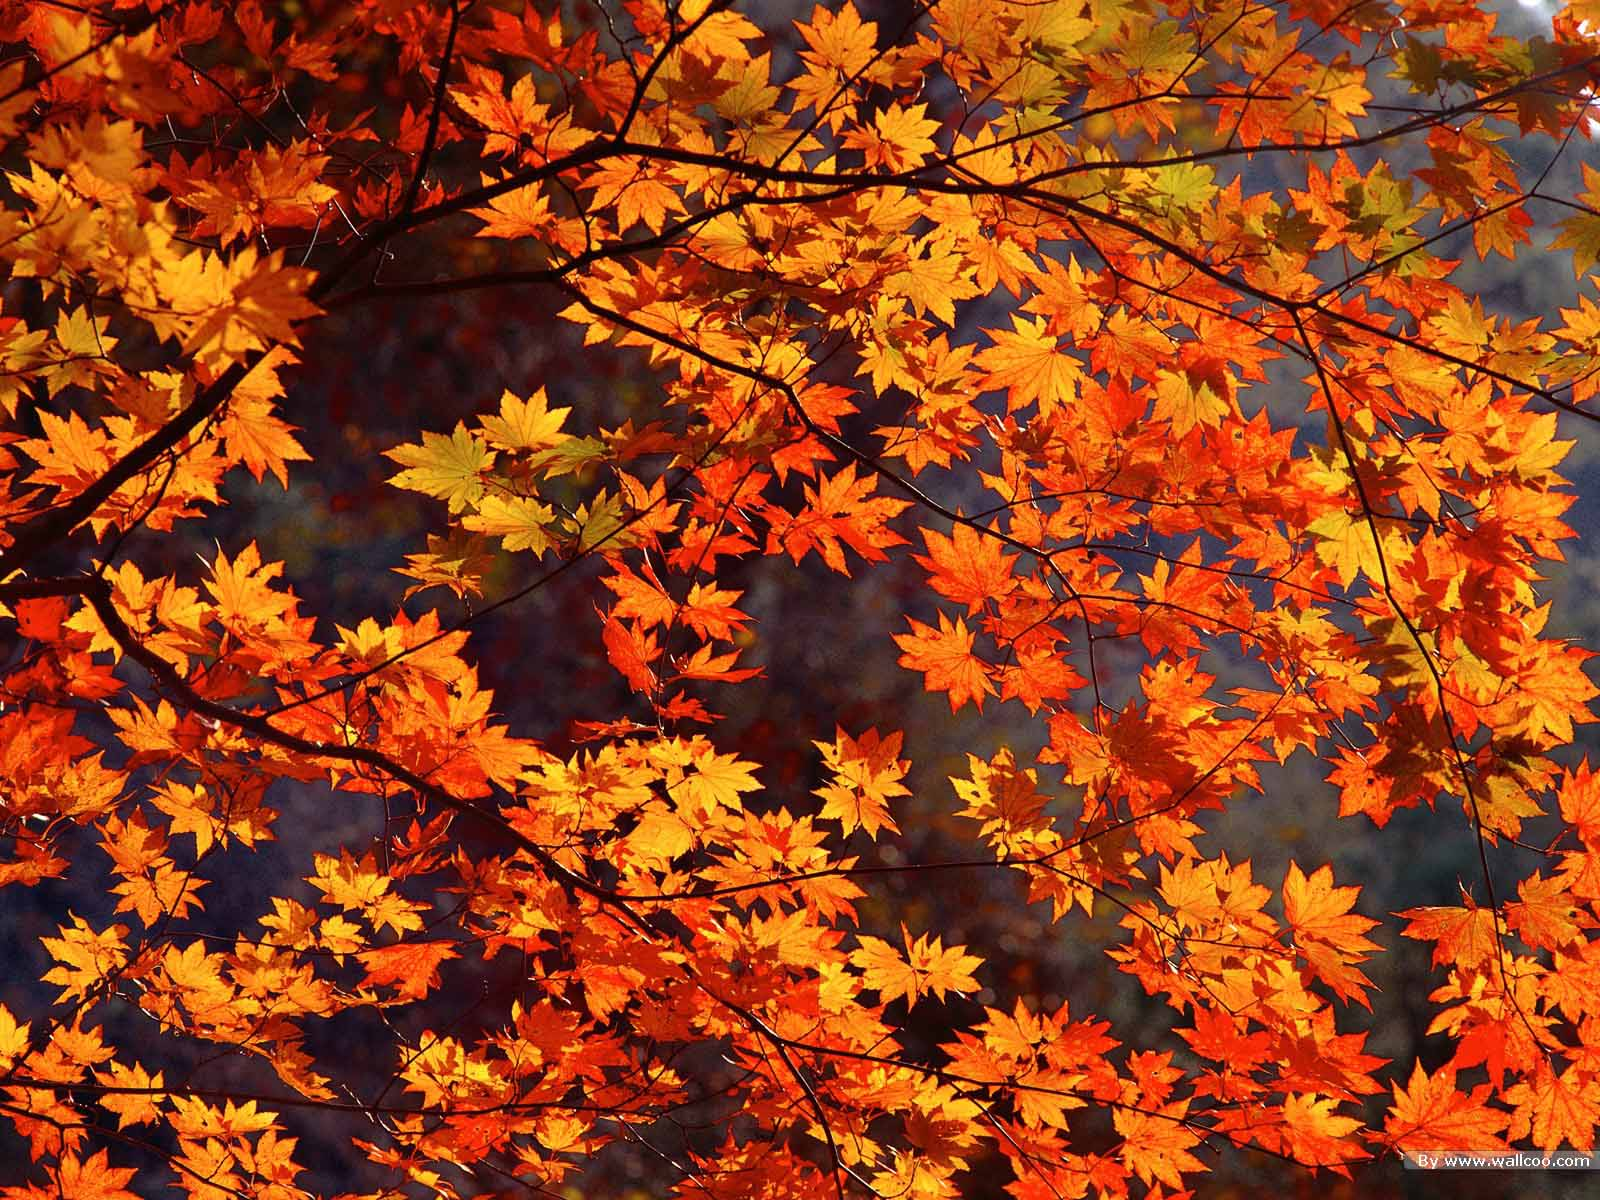 Autumn Leaves Live Wallpaper Free Fall Computer Wallpaper